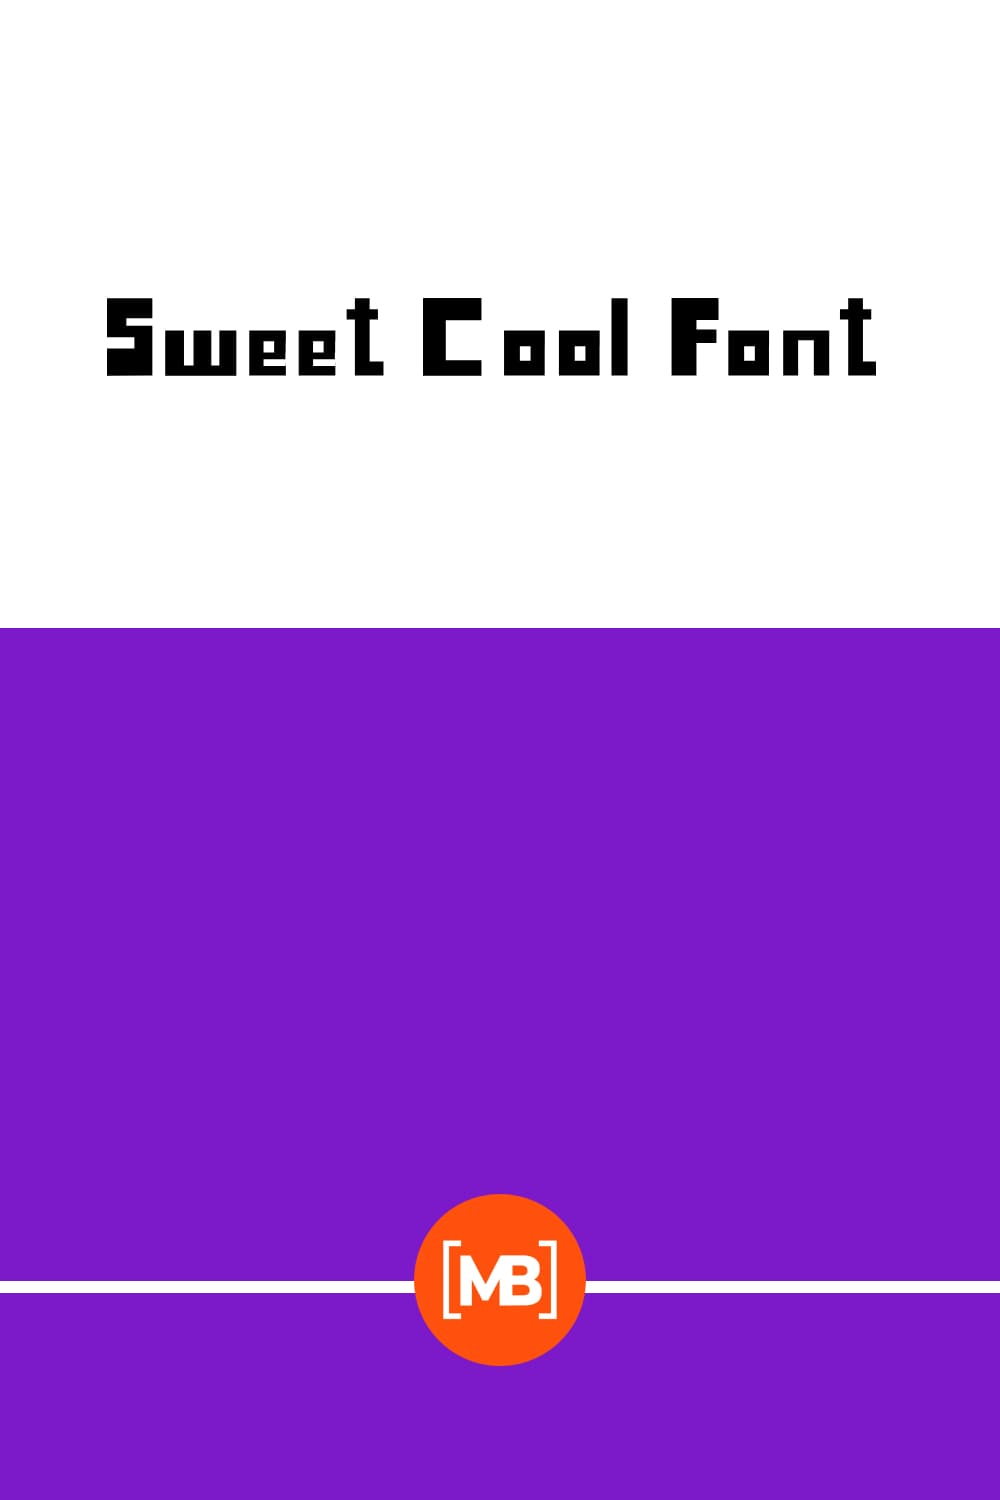 Looks like a game font.